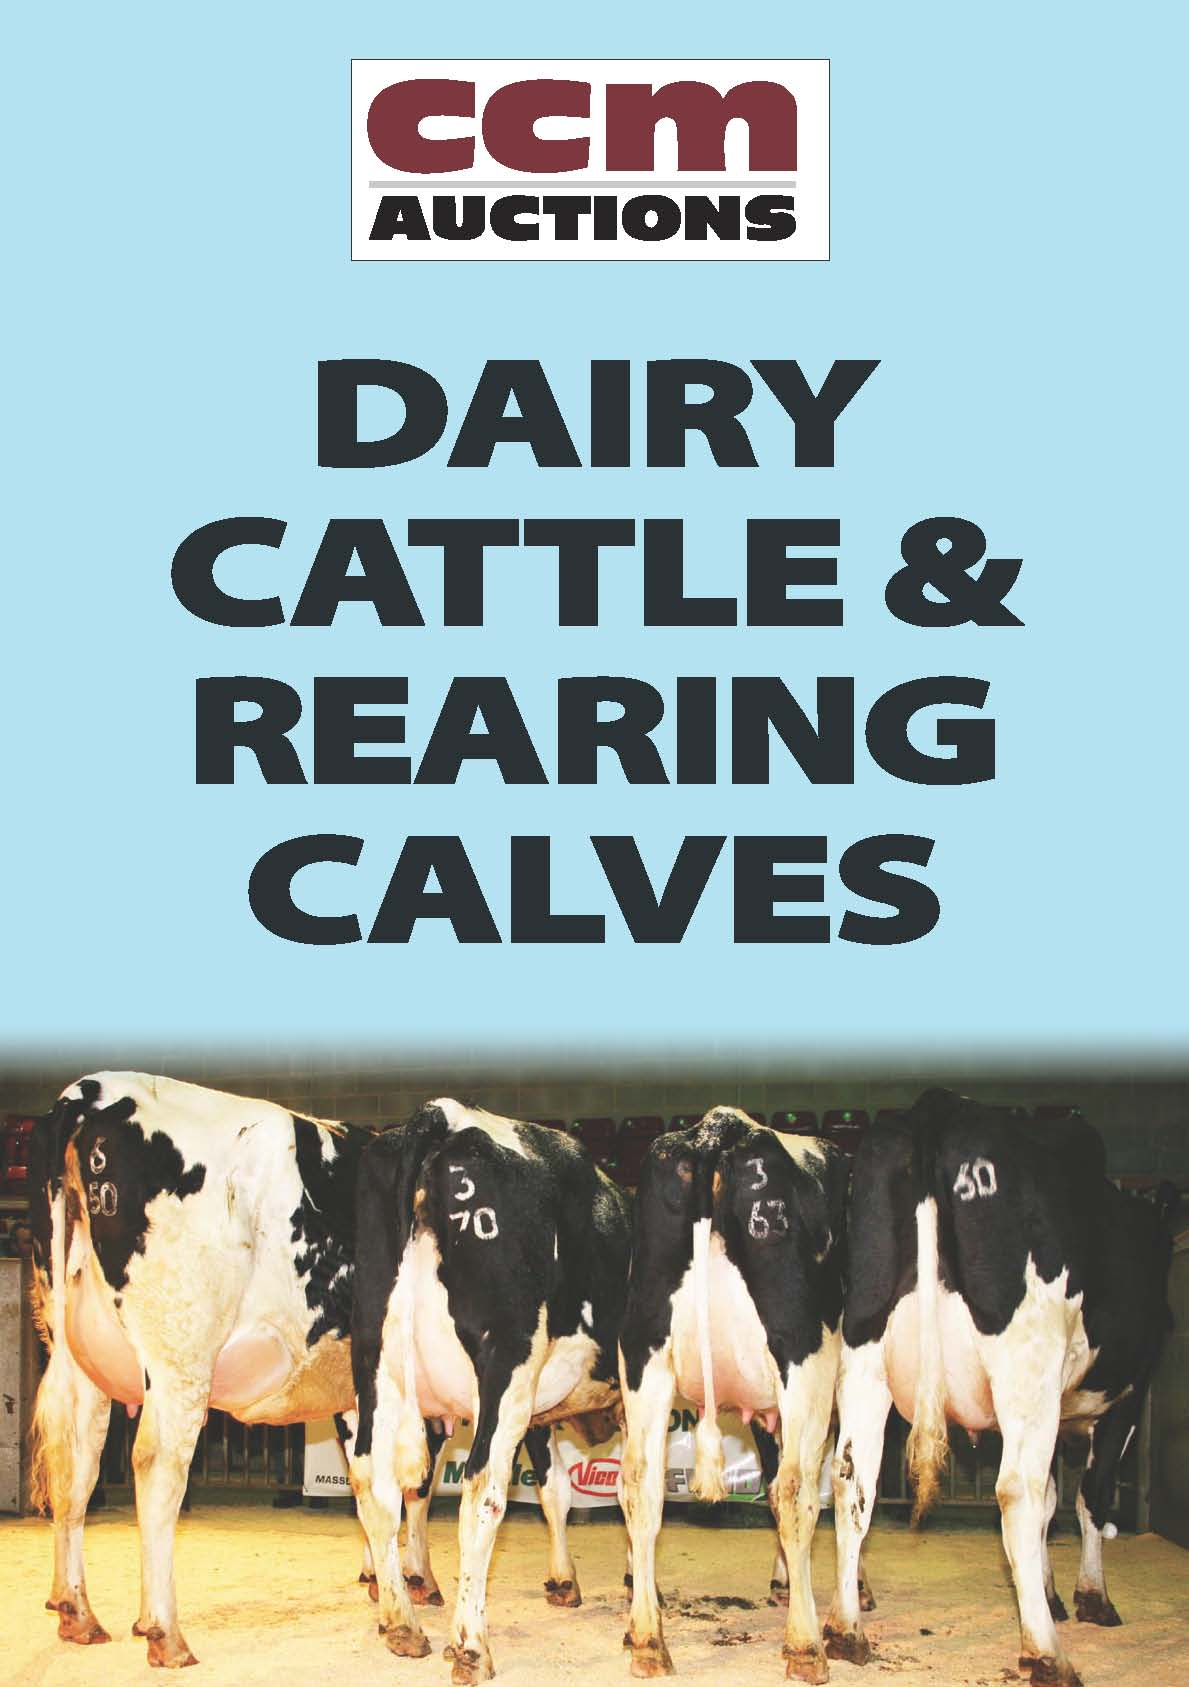 DAIRY & CALVES - MONDAY 12TH OCTOBER 2015